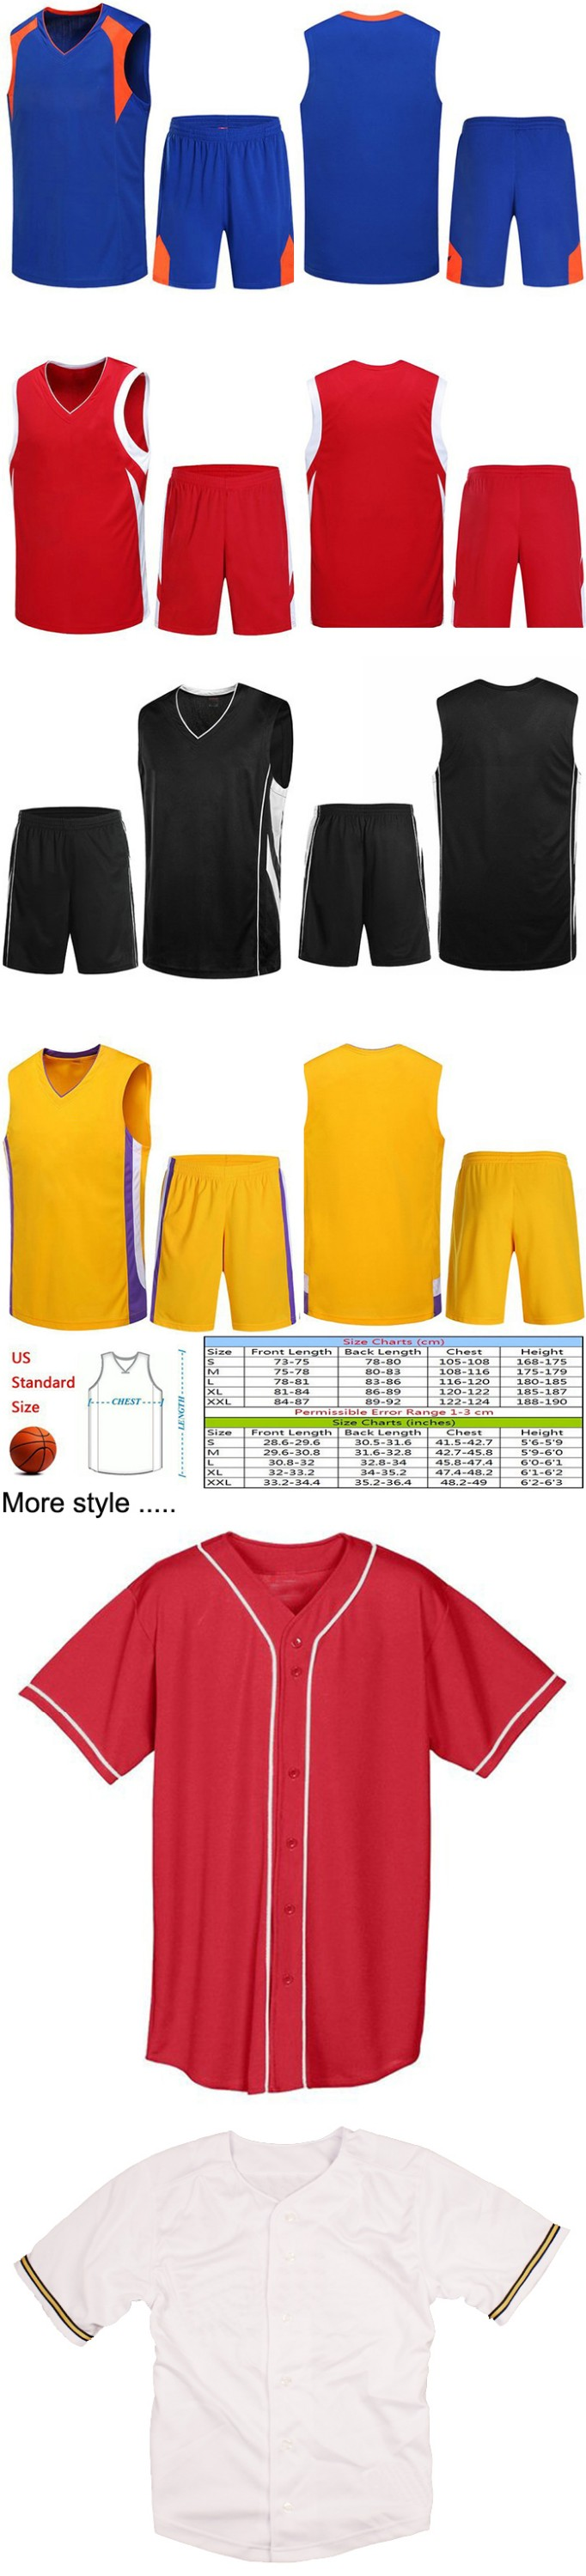 custom basketball jersey uniform design